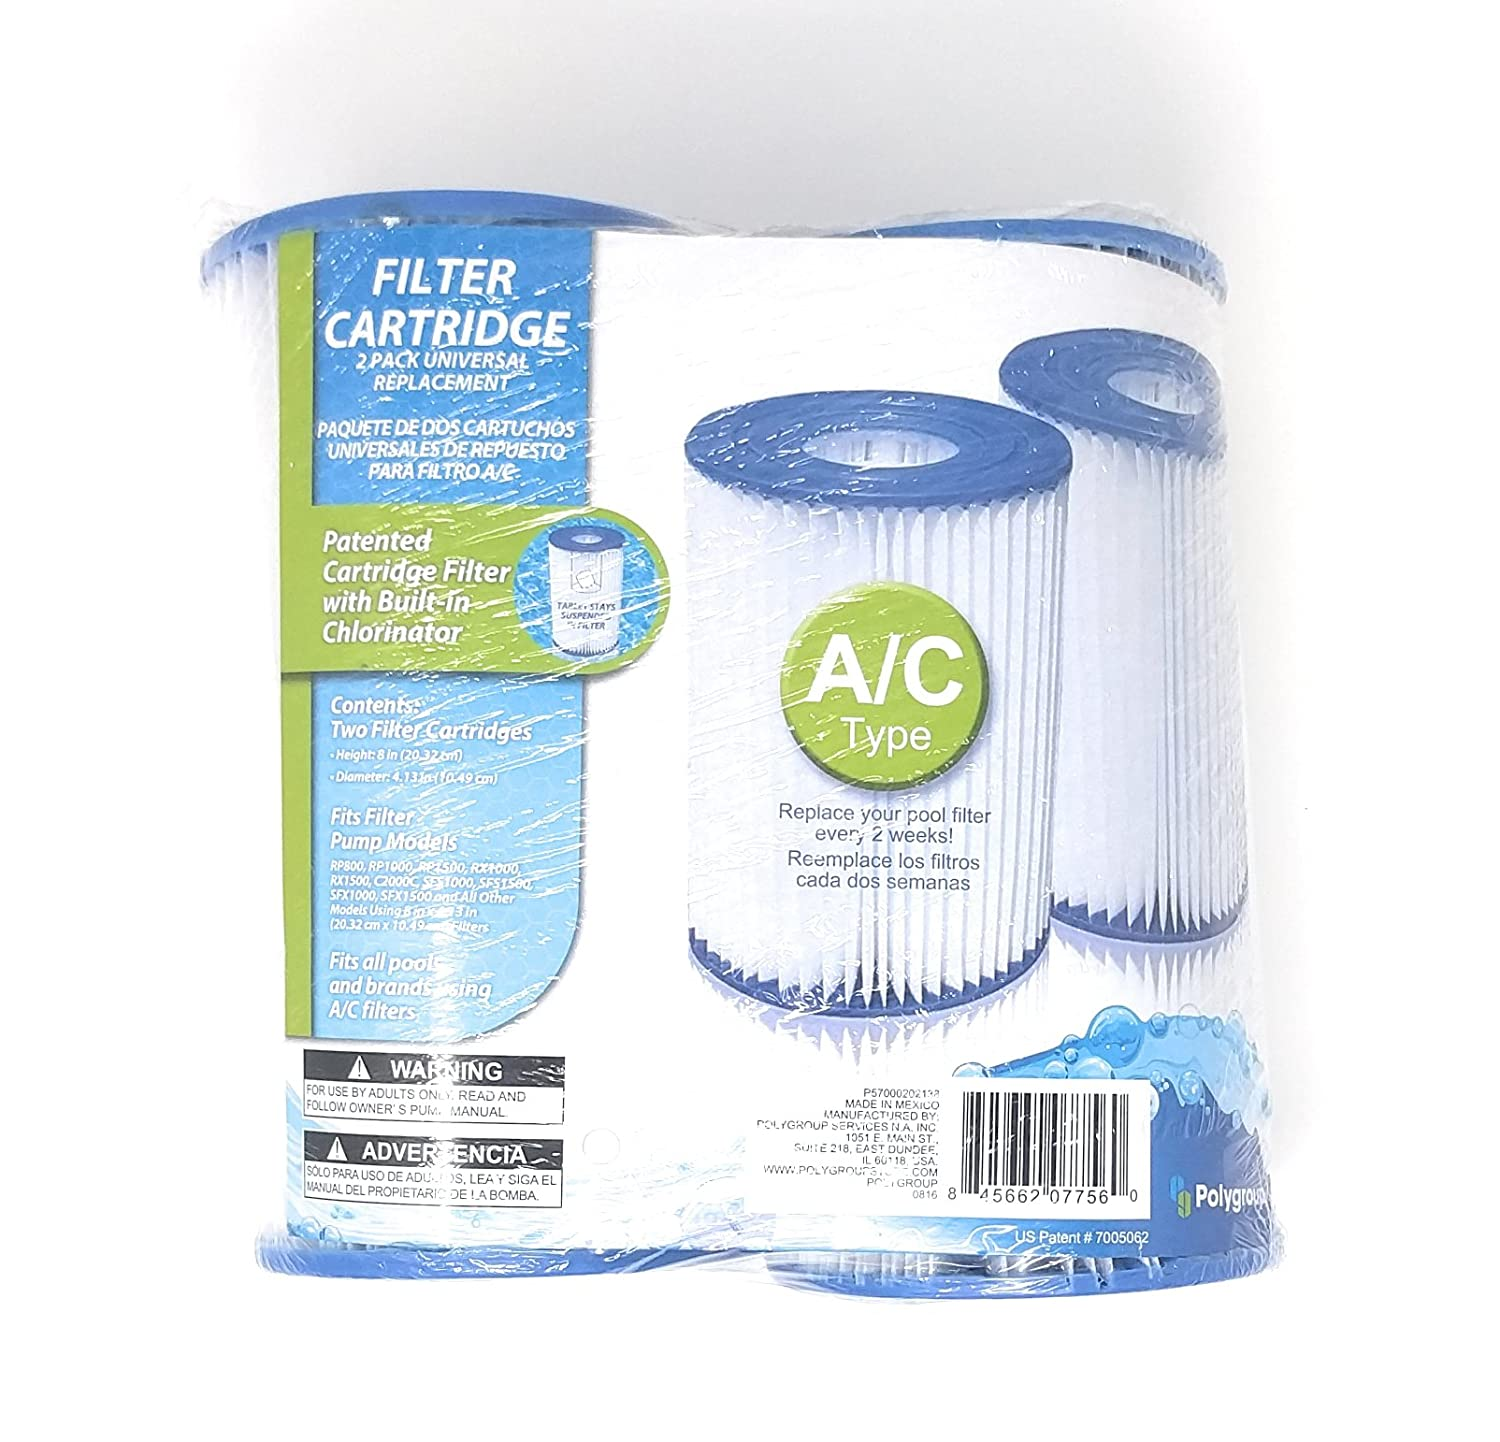 Universal Replacement Filter Cartridges Type A or C Pack of 2